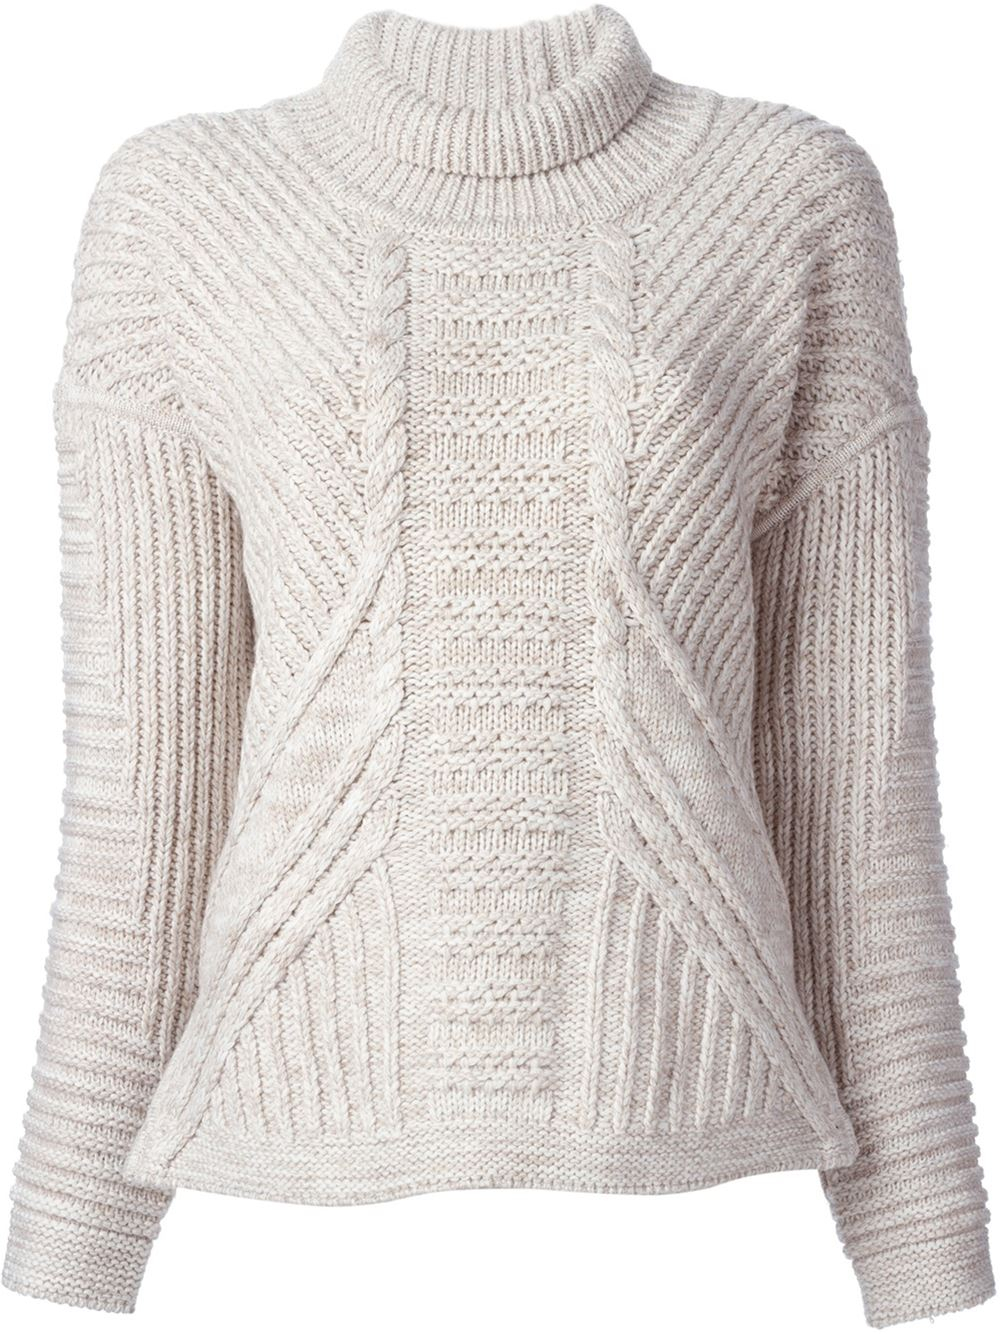 Duffy Cable Knit Turtle-neck Sweater in Natural | Lyst